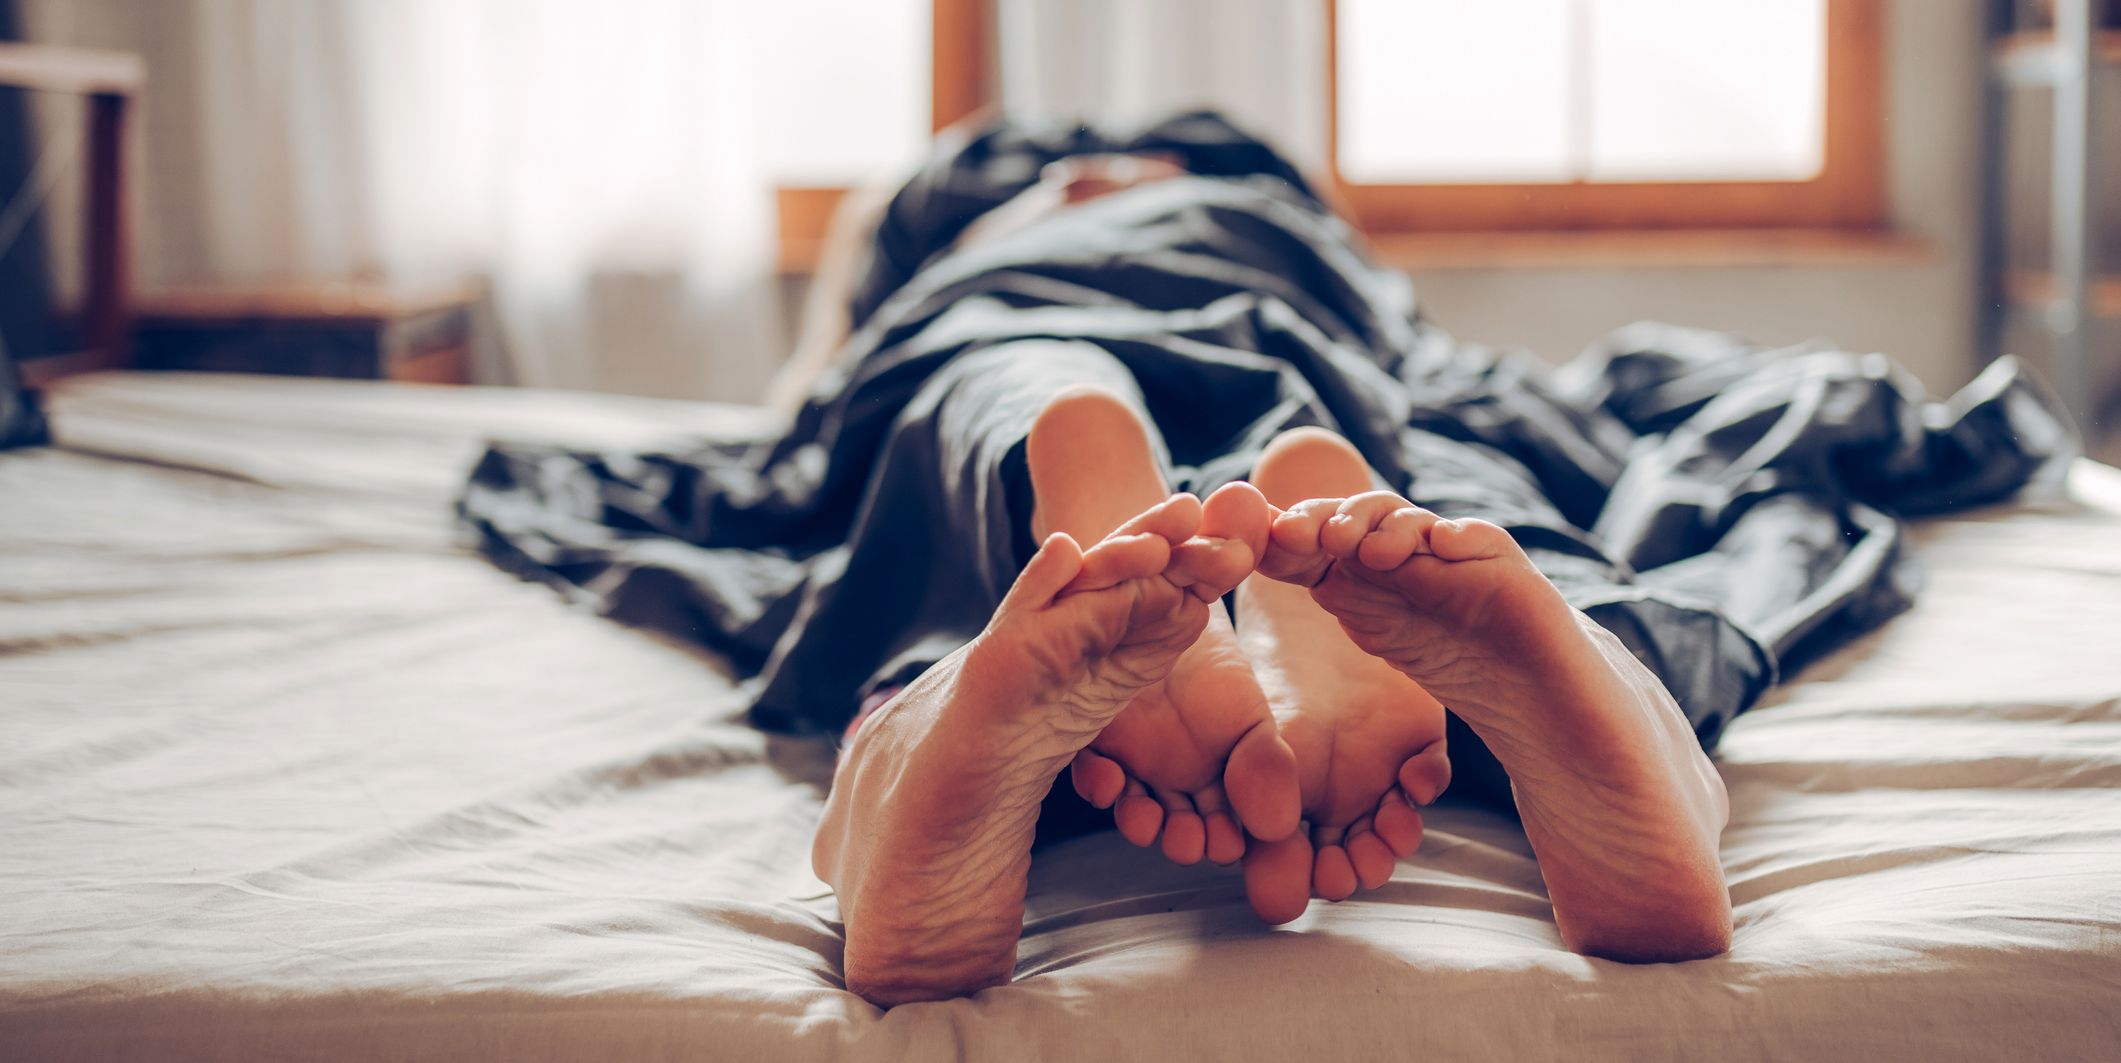 Best sex tips to keep things interesting - Women's Health UK